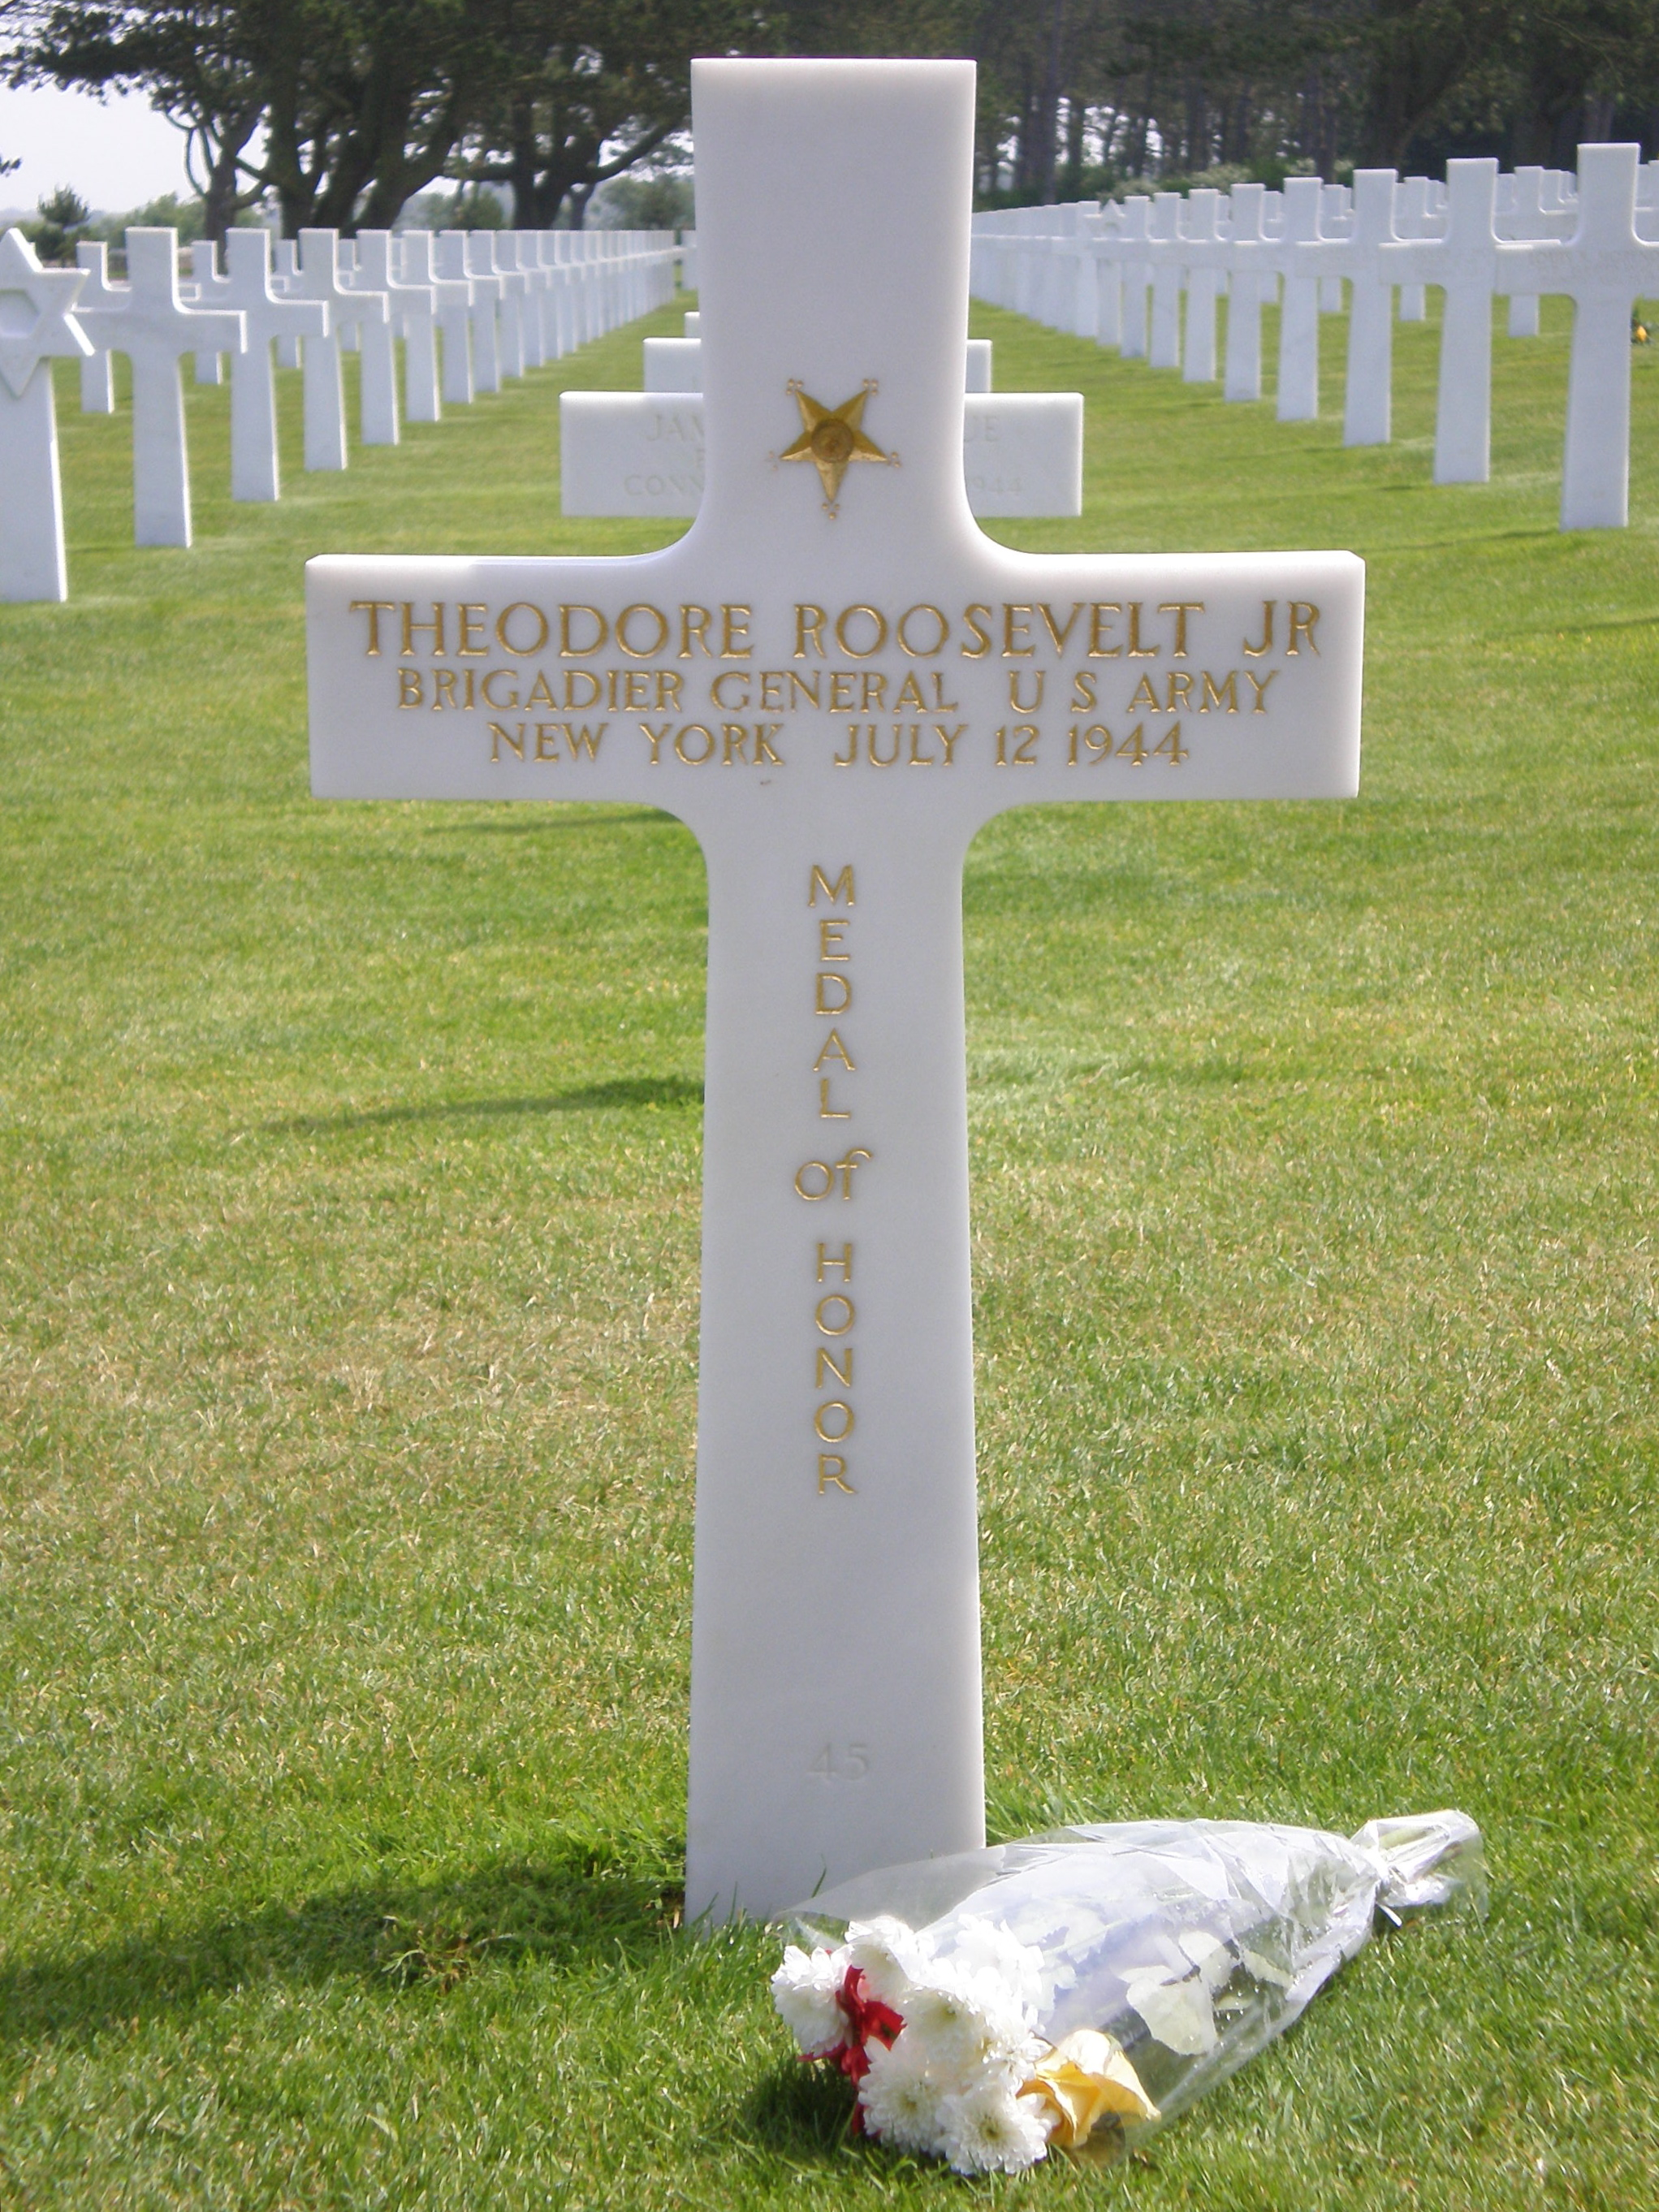 Grave of Theodore Roosevelt Jr. - Gravestone at Normandy American Cemetery and Memorial